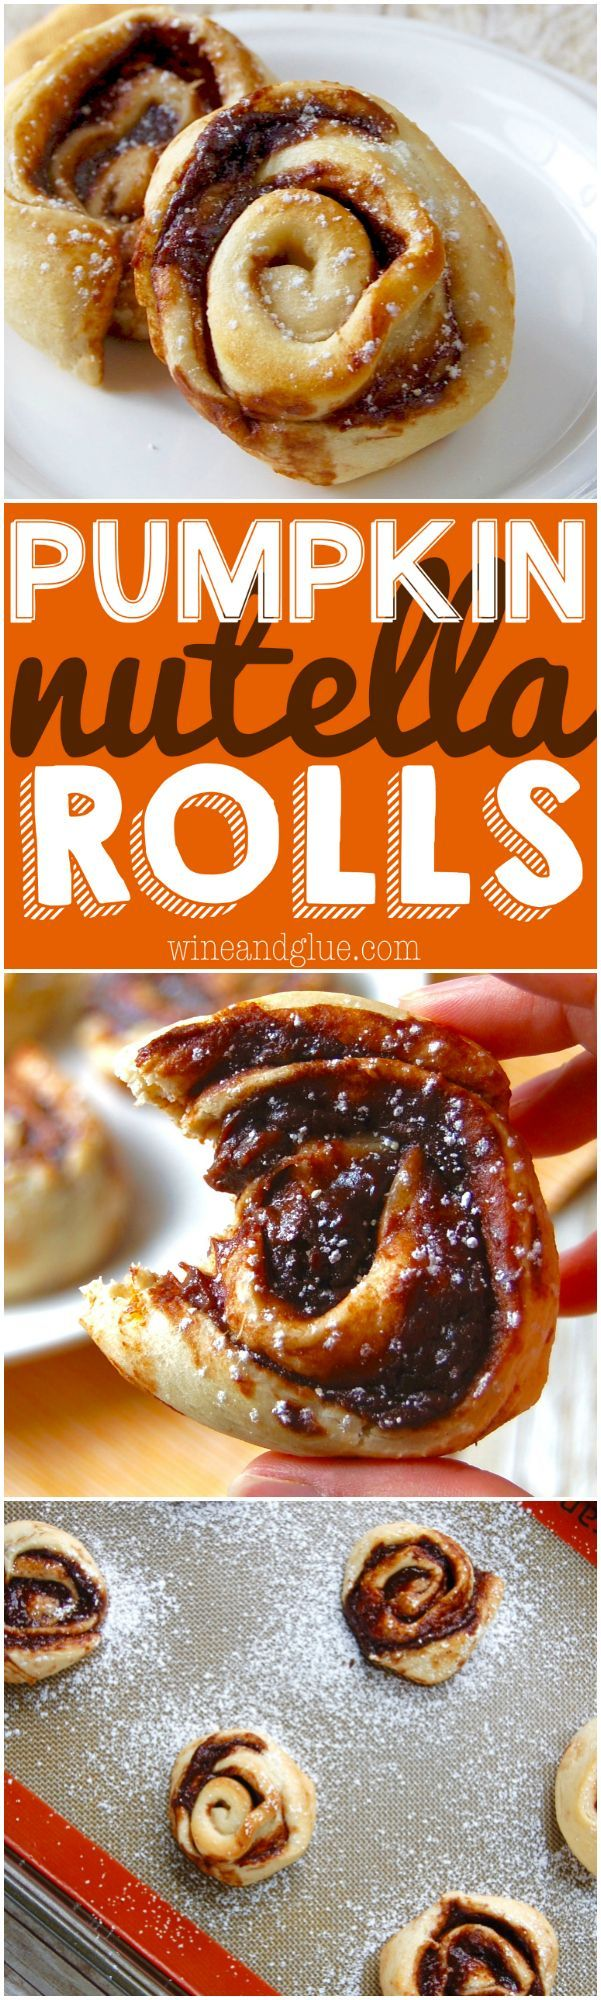 Pumpkin Nutella Rolls! The delicious flavors of pumpkin and Nutella swirled together in a delicious pinwheel. Super simple to make and incredibly delicious!